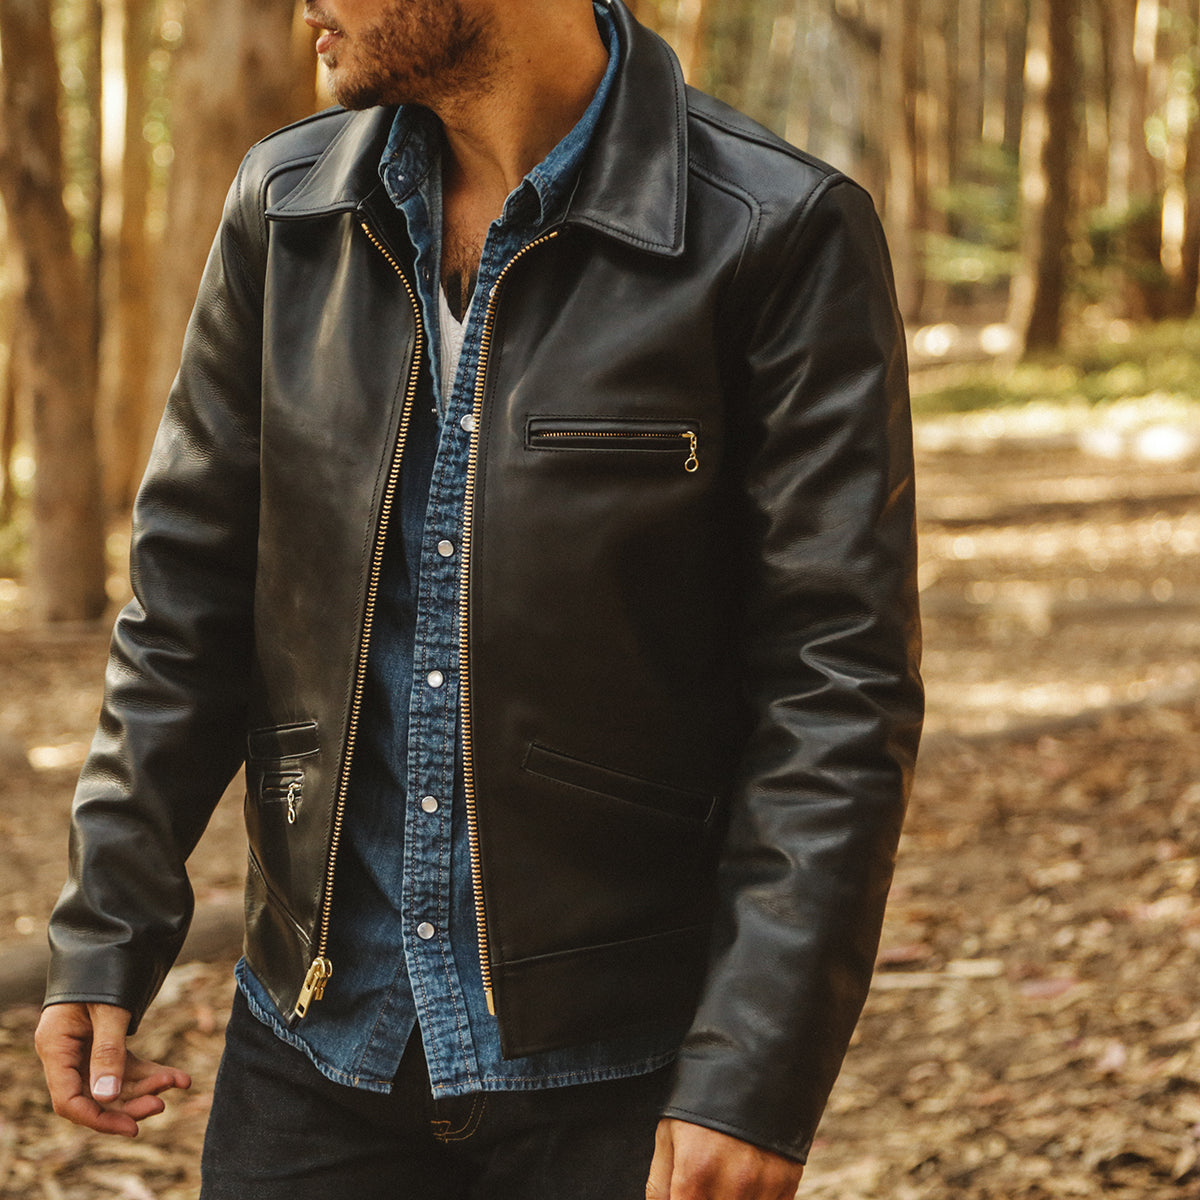 Garrison Jacket No.105 (Limited Edition) (SOLD OUT)